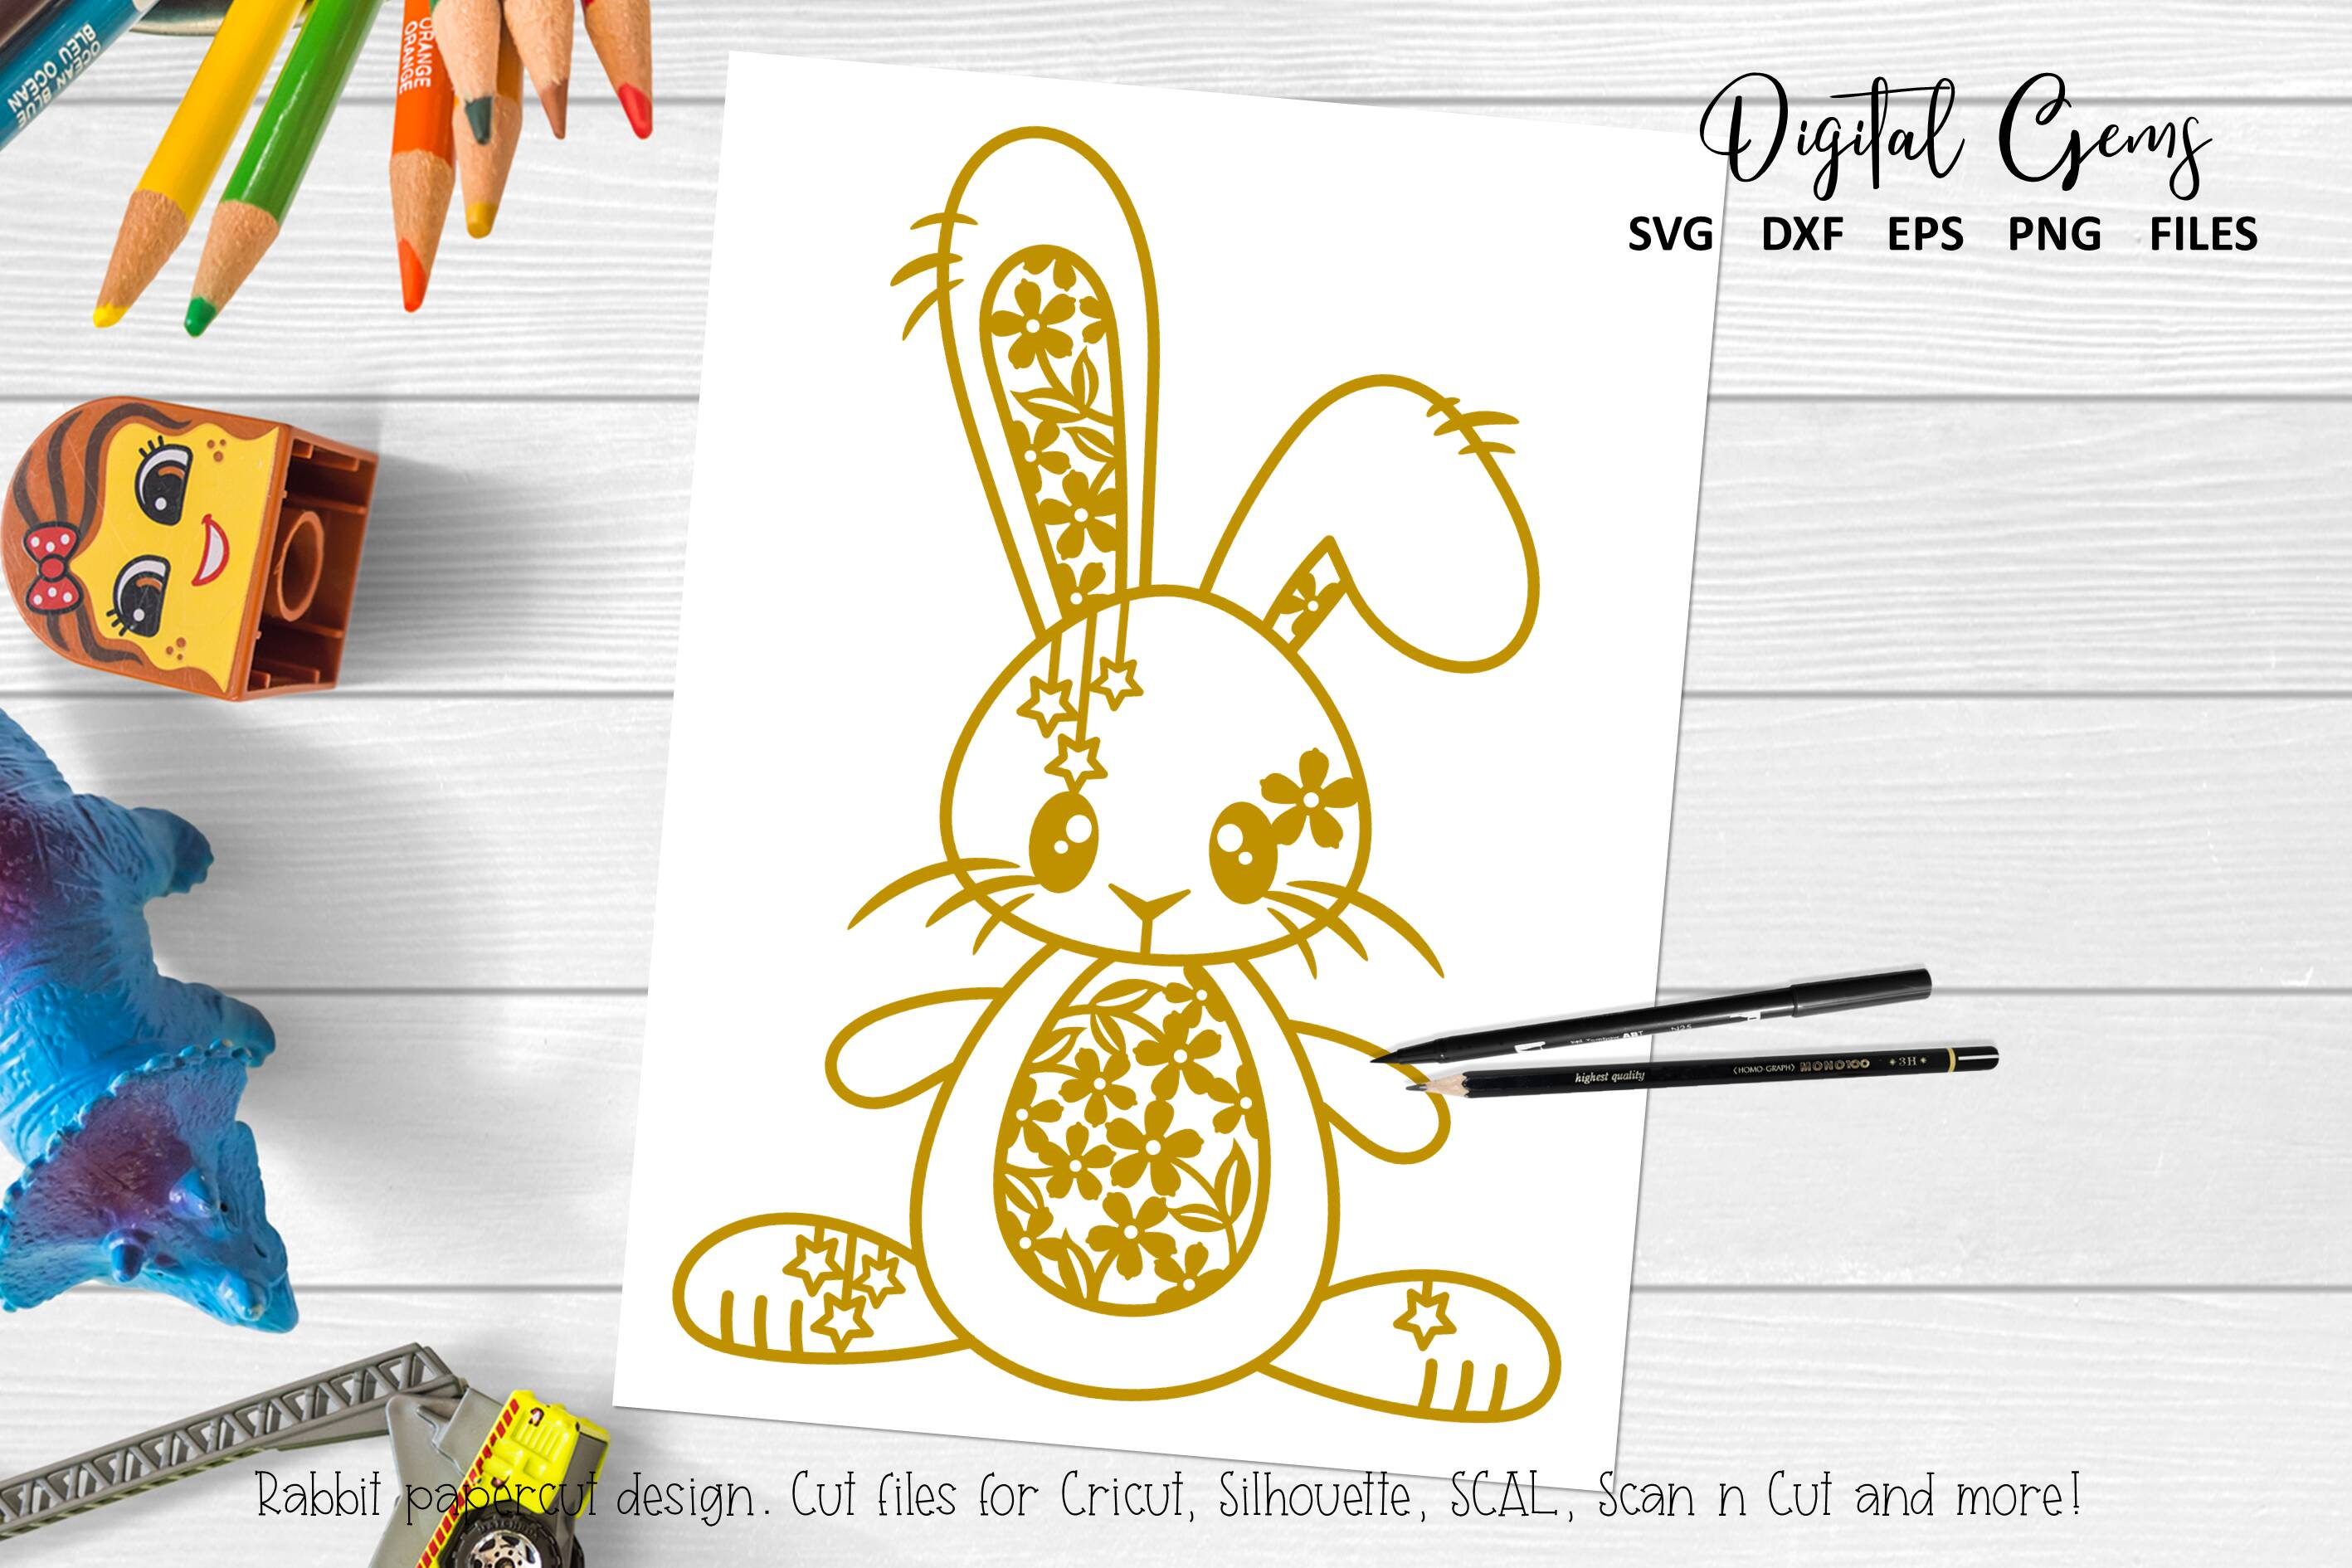 Download Free Rabbit Paper Cut Design Graphic By Digital Gems Creative Fabrica for Cricut Explore, Silhouette and other cutting machines.